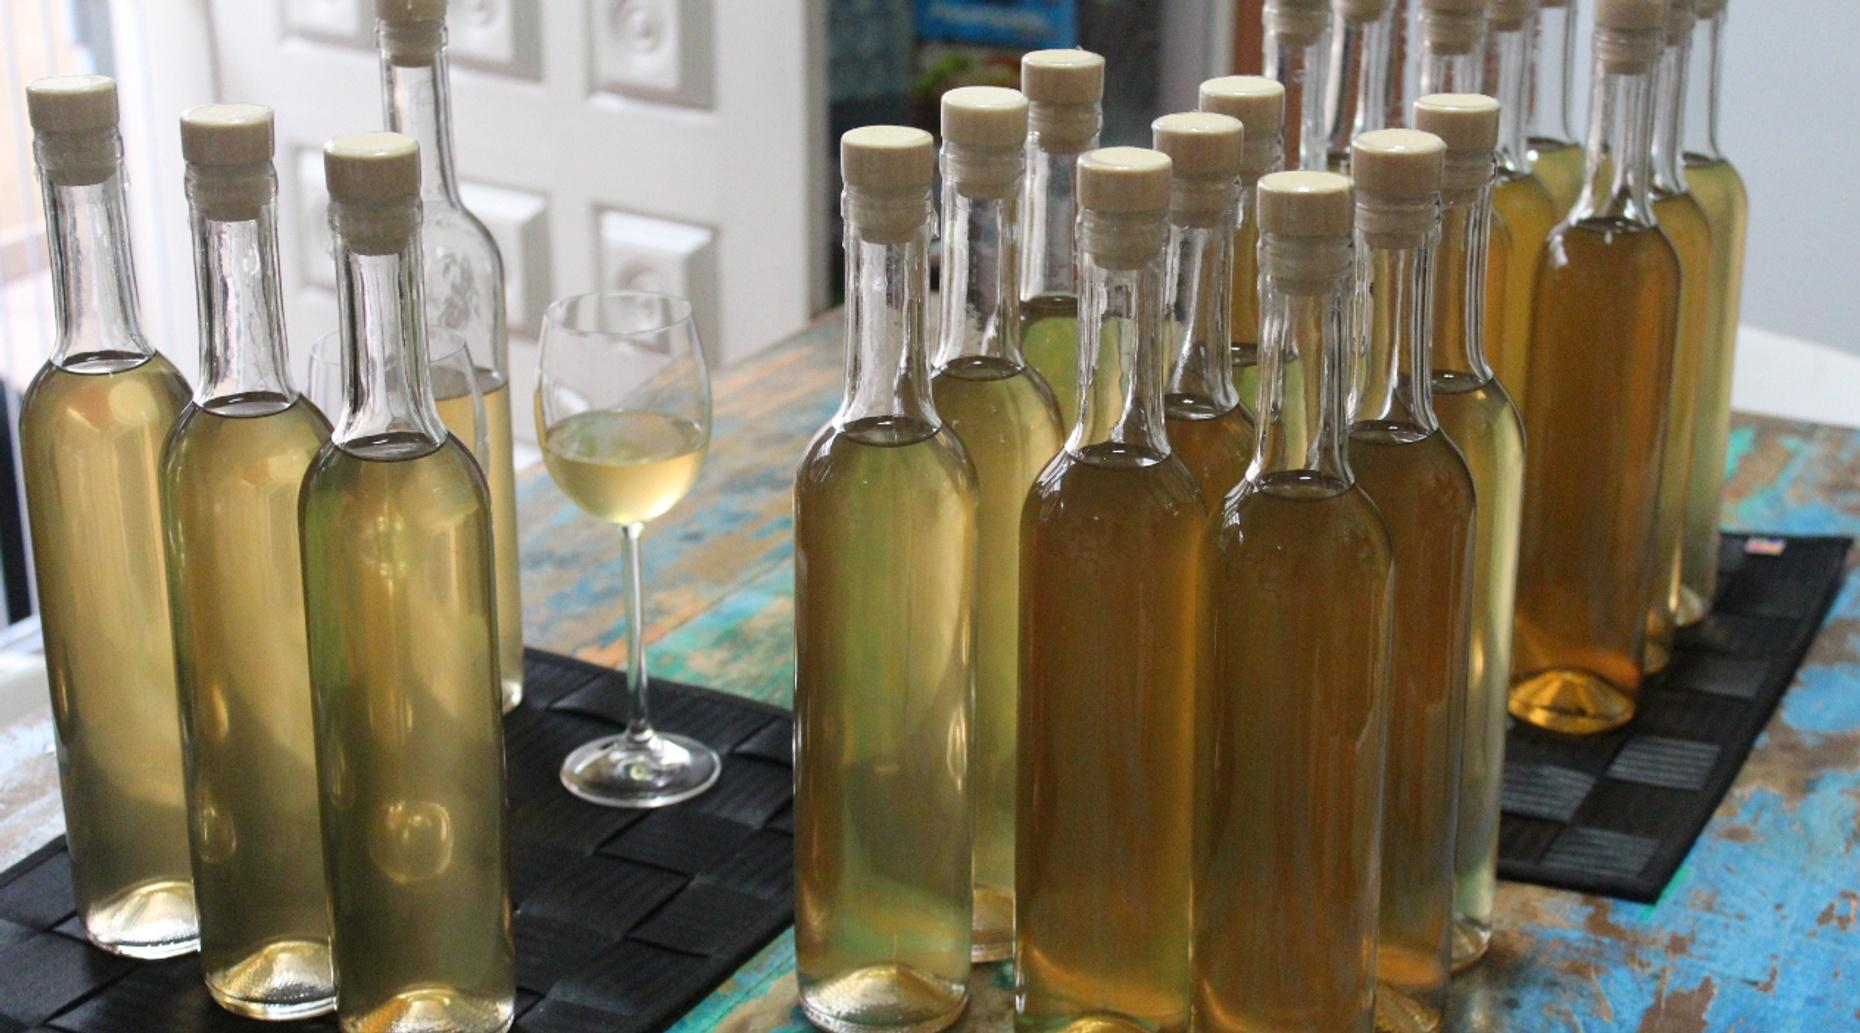 Meadery Tour in South Allentown